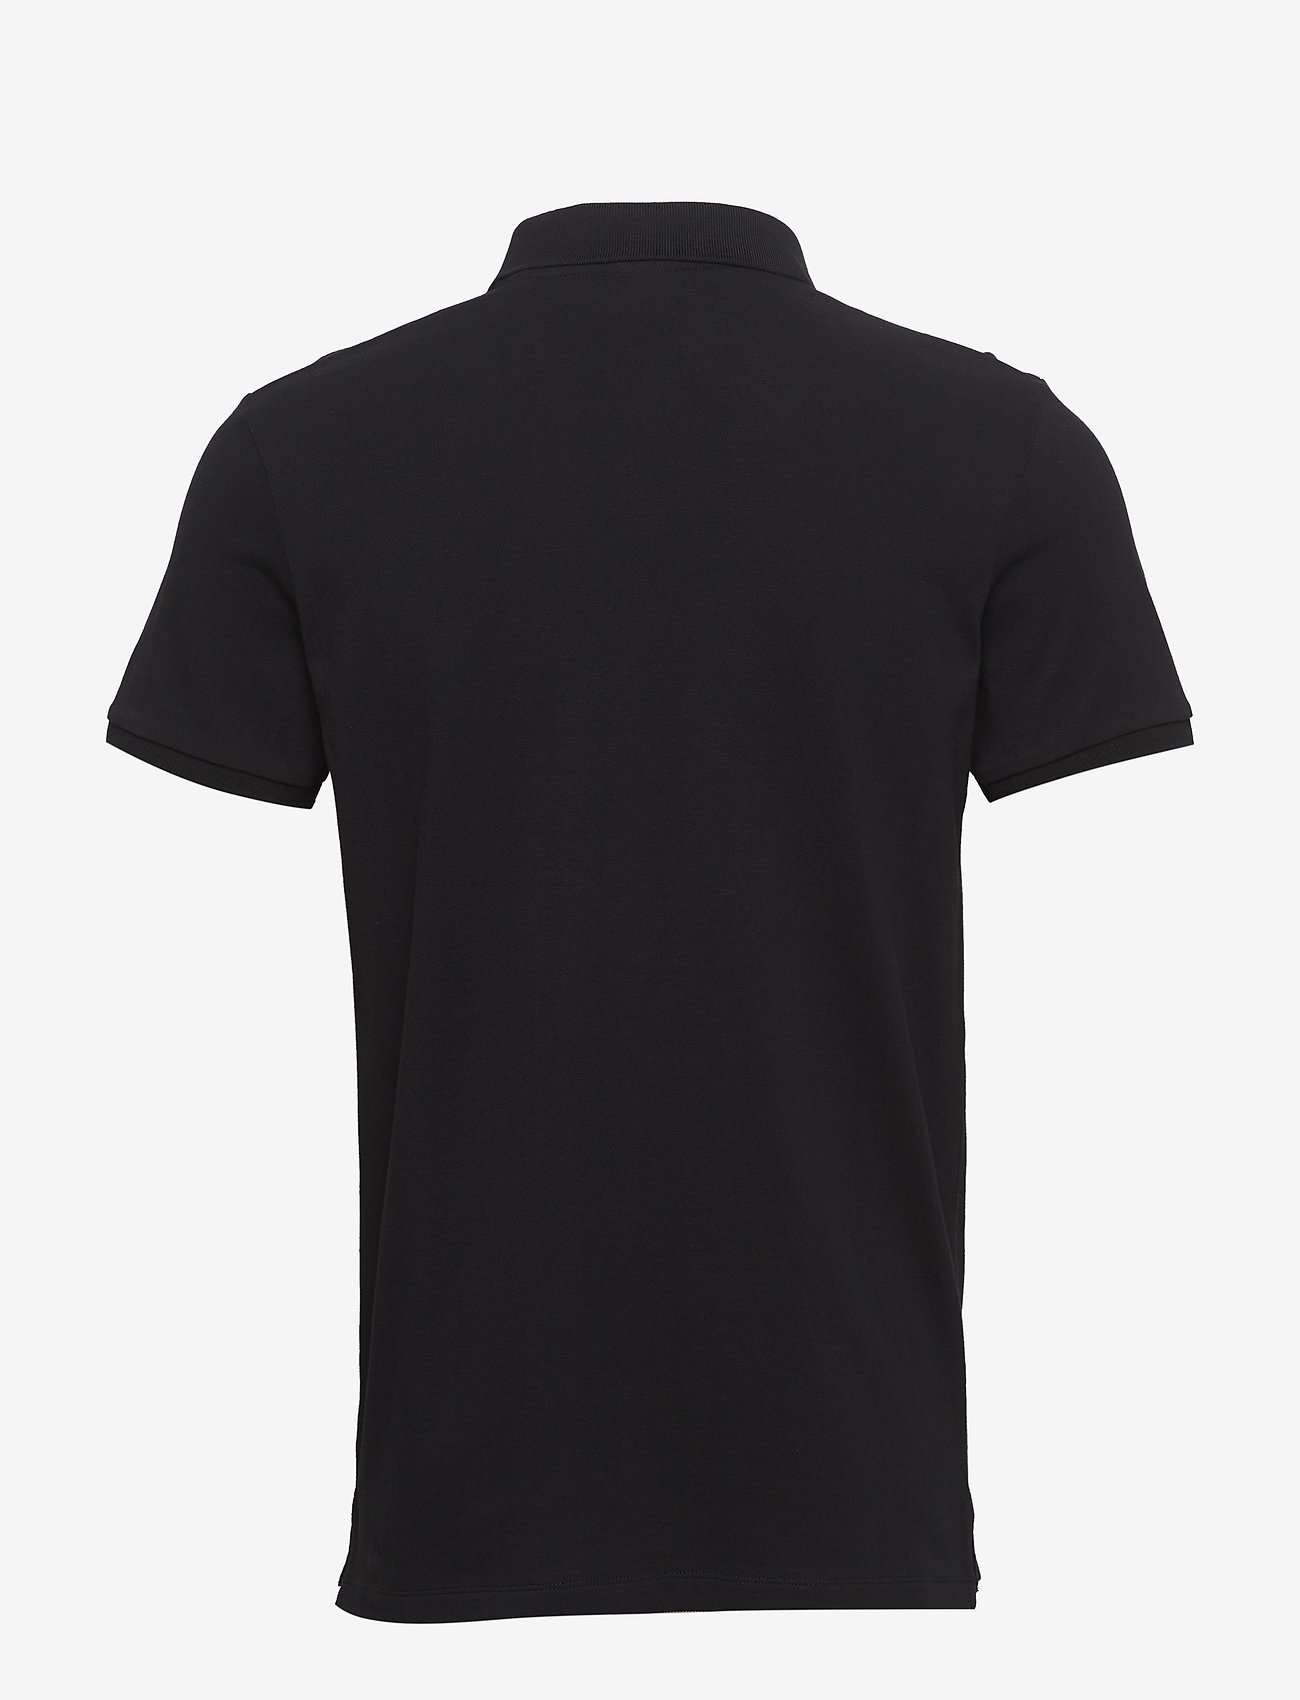 Scotch & Soda - - Classic polo in pique quality with clean outlook - short-sleeved polos - black - 1